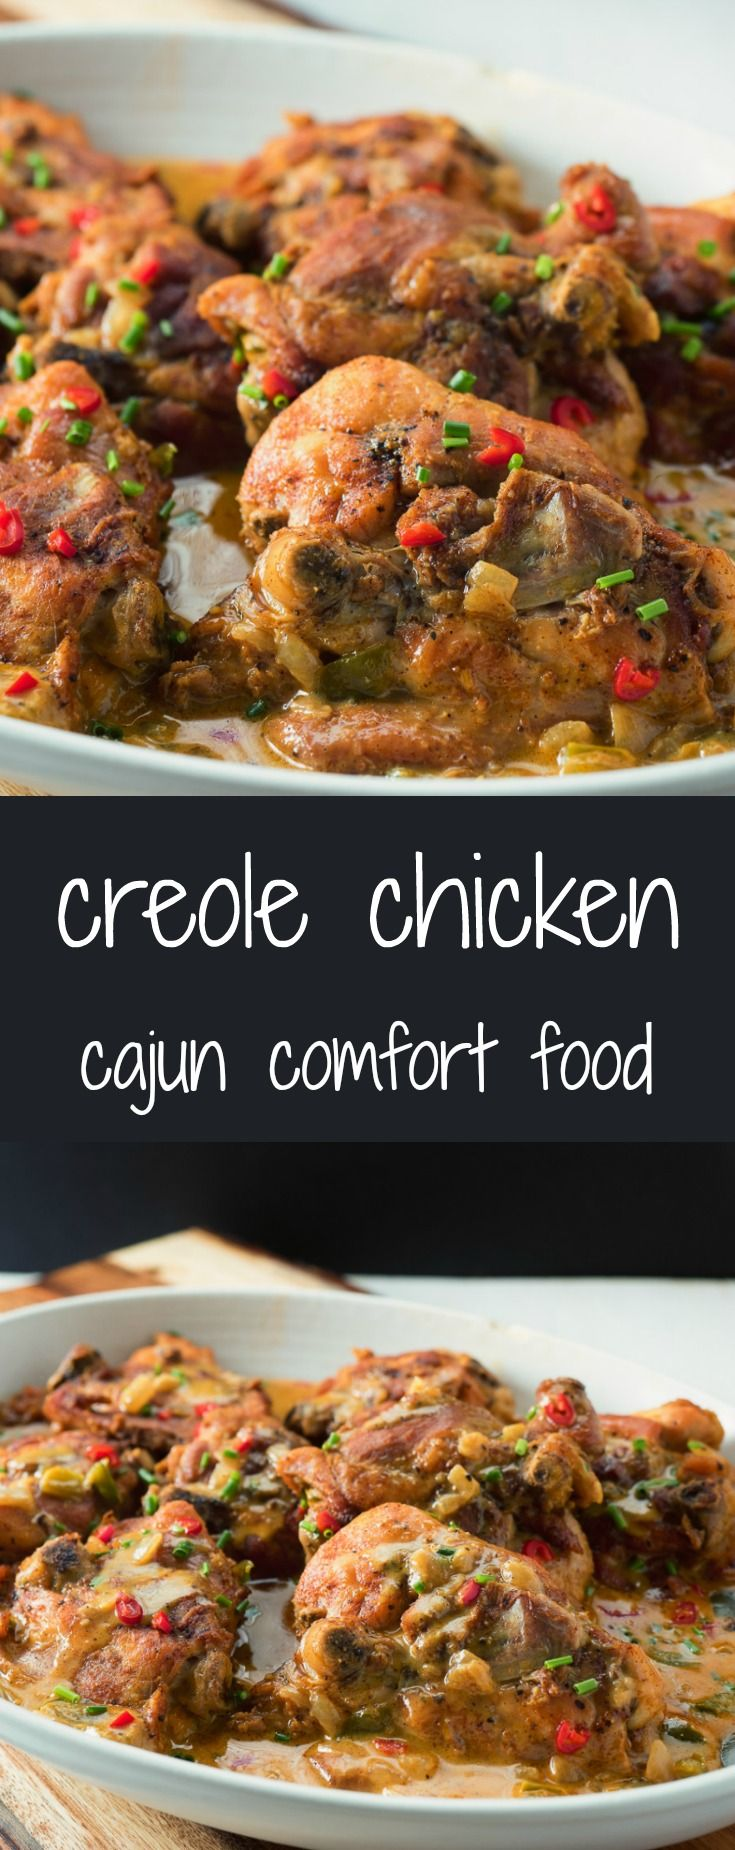 Creole chicken recipe easy foods and recipes easy to make this creole chicken is pure cajun comfort food forumfinder Images